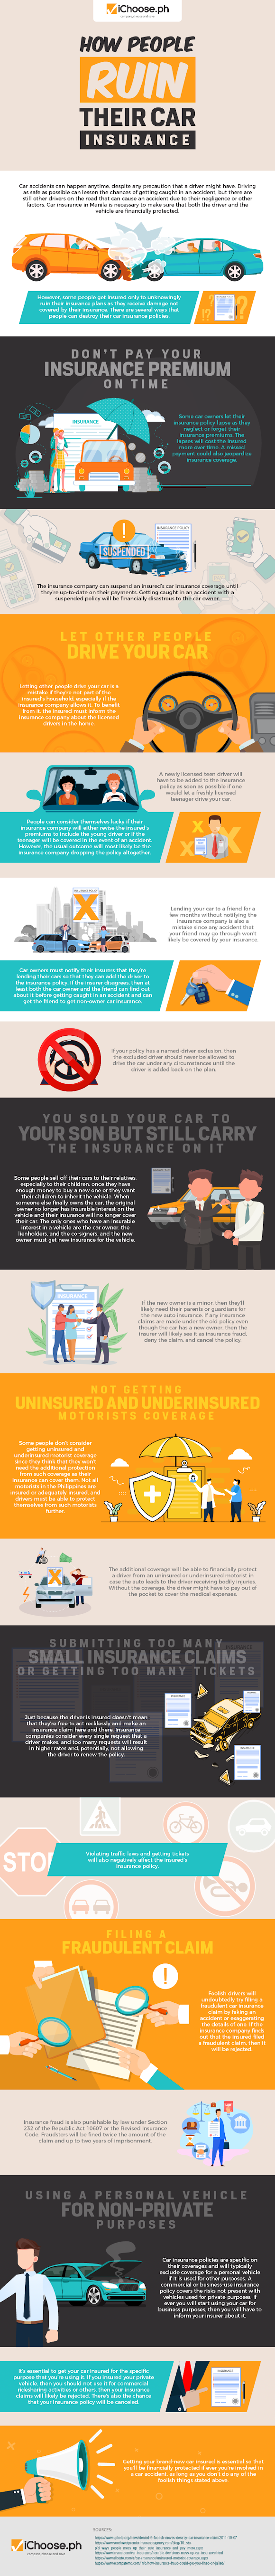 How People Ruin Their Car Insurance #infographic